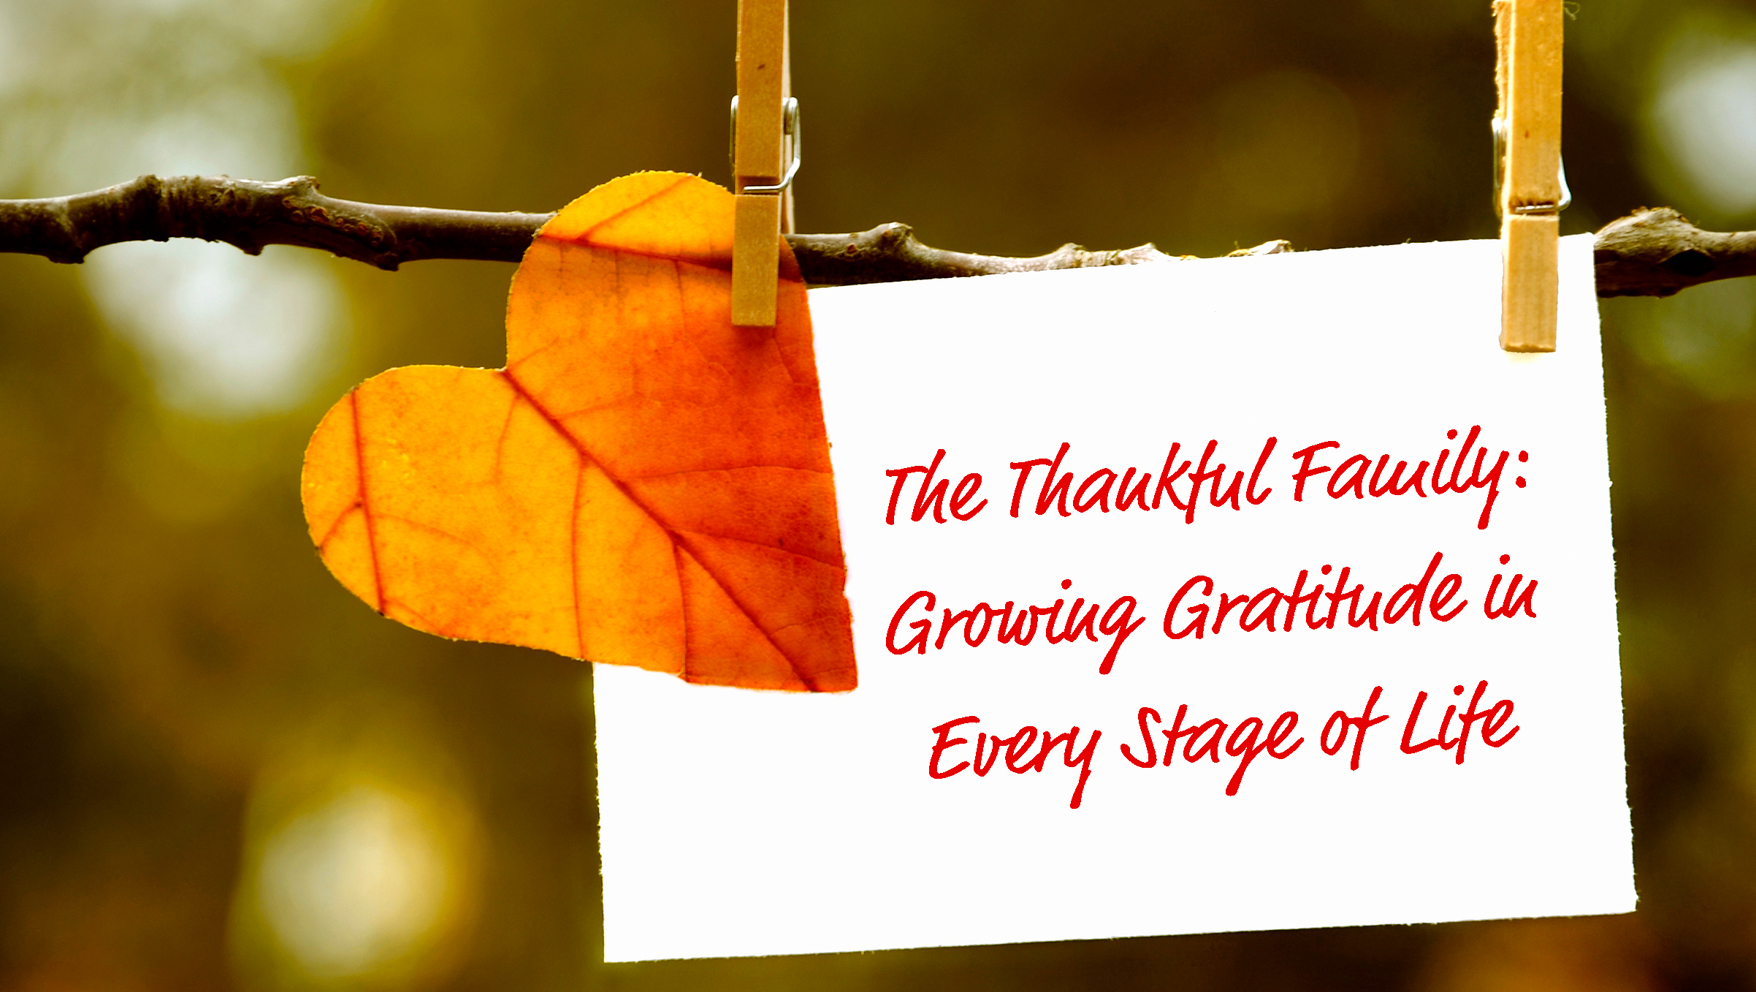 The Thankful Family: Growing Gratitude in Every Stage of Life